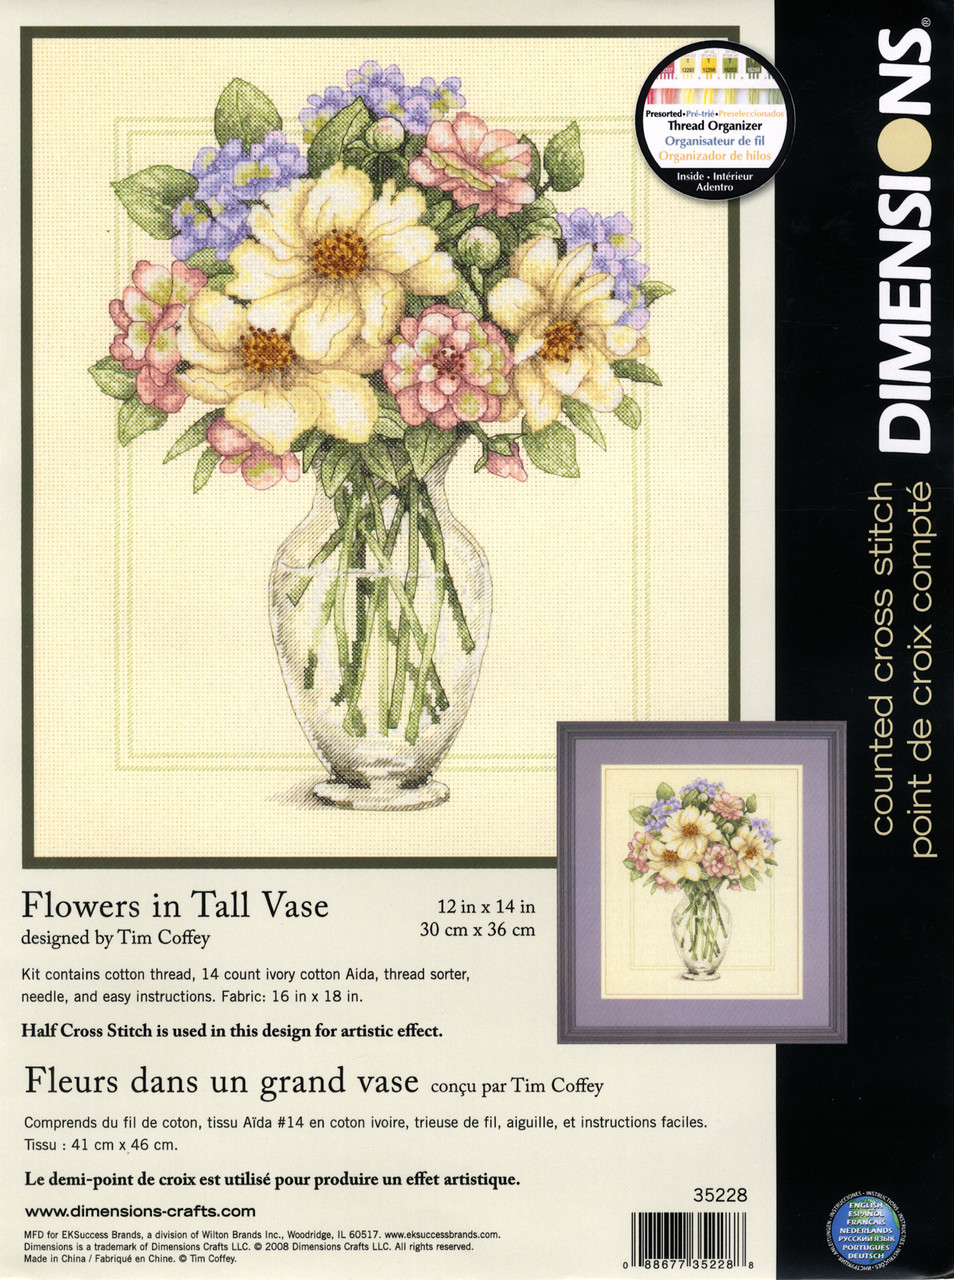 Dimensions - Flowers in Tall Vase